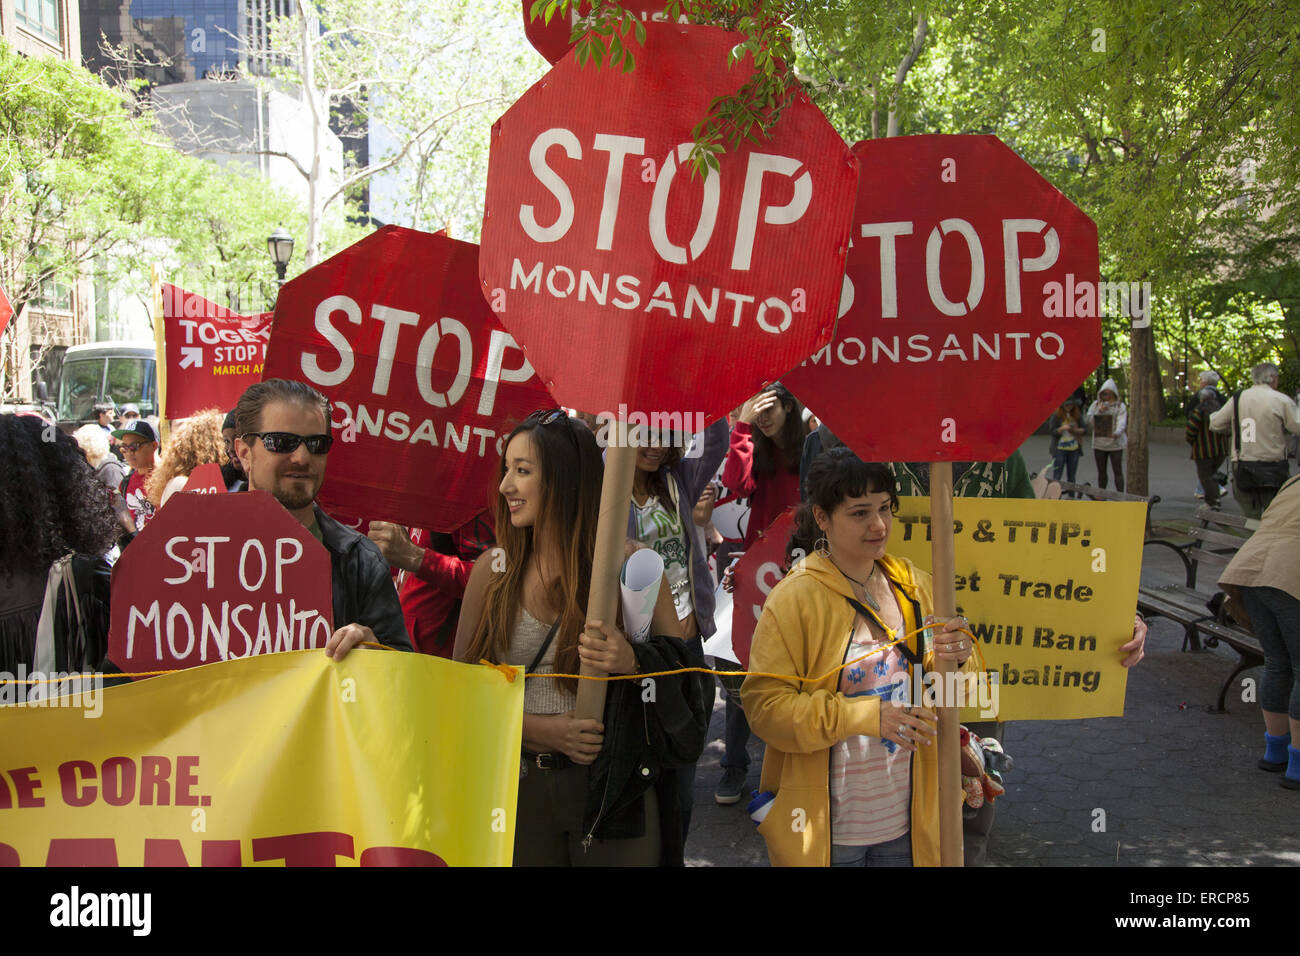 Protest March against Monsanto, genetically modified foods and the company's  attack on a 'consumer,s  right - Stock Image